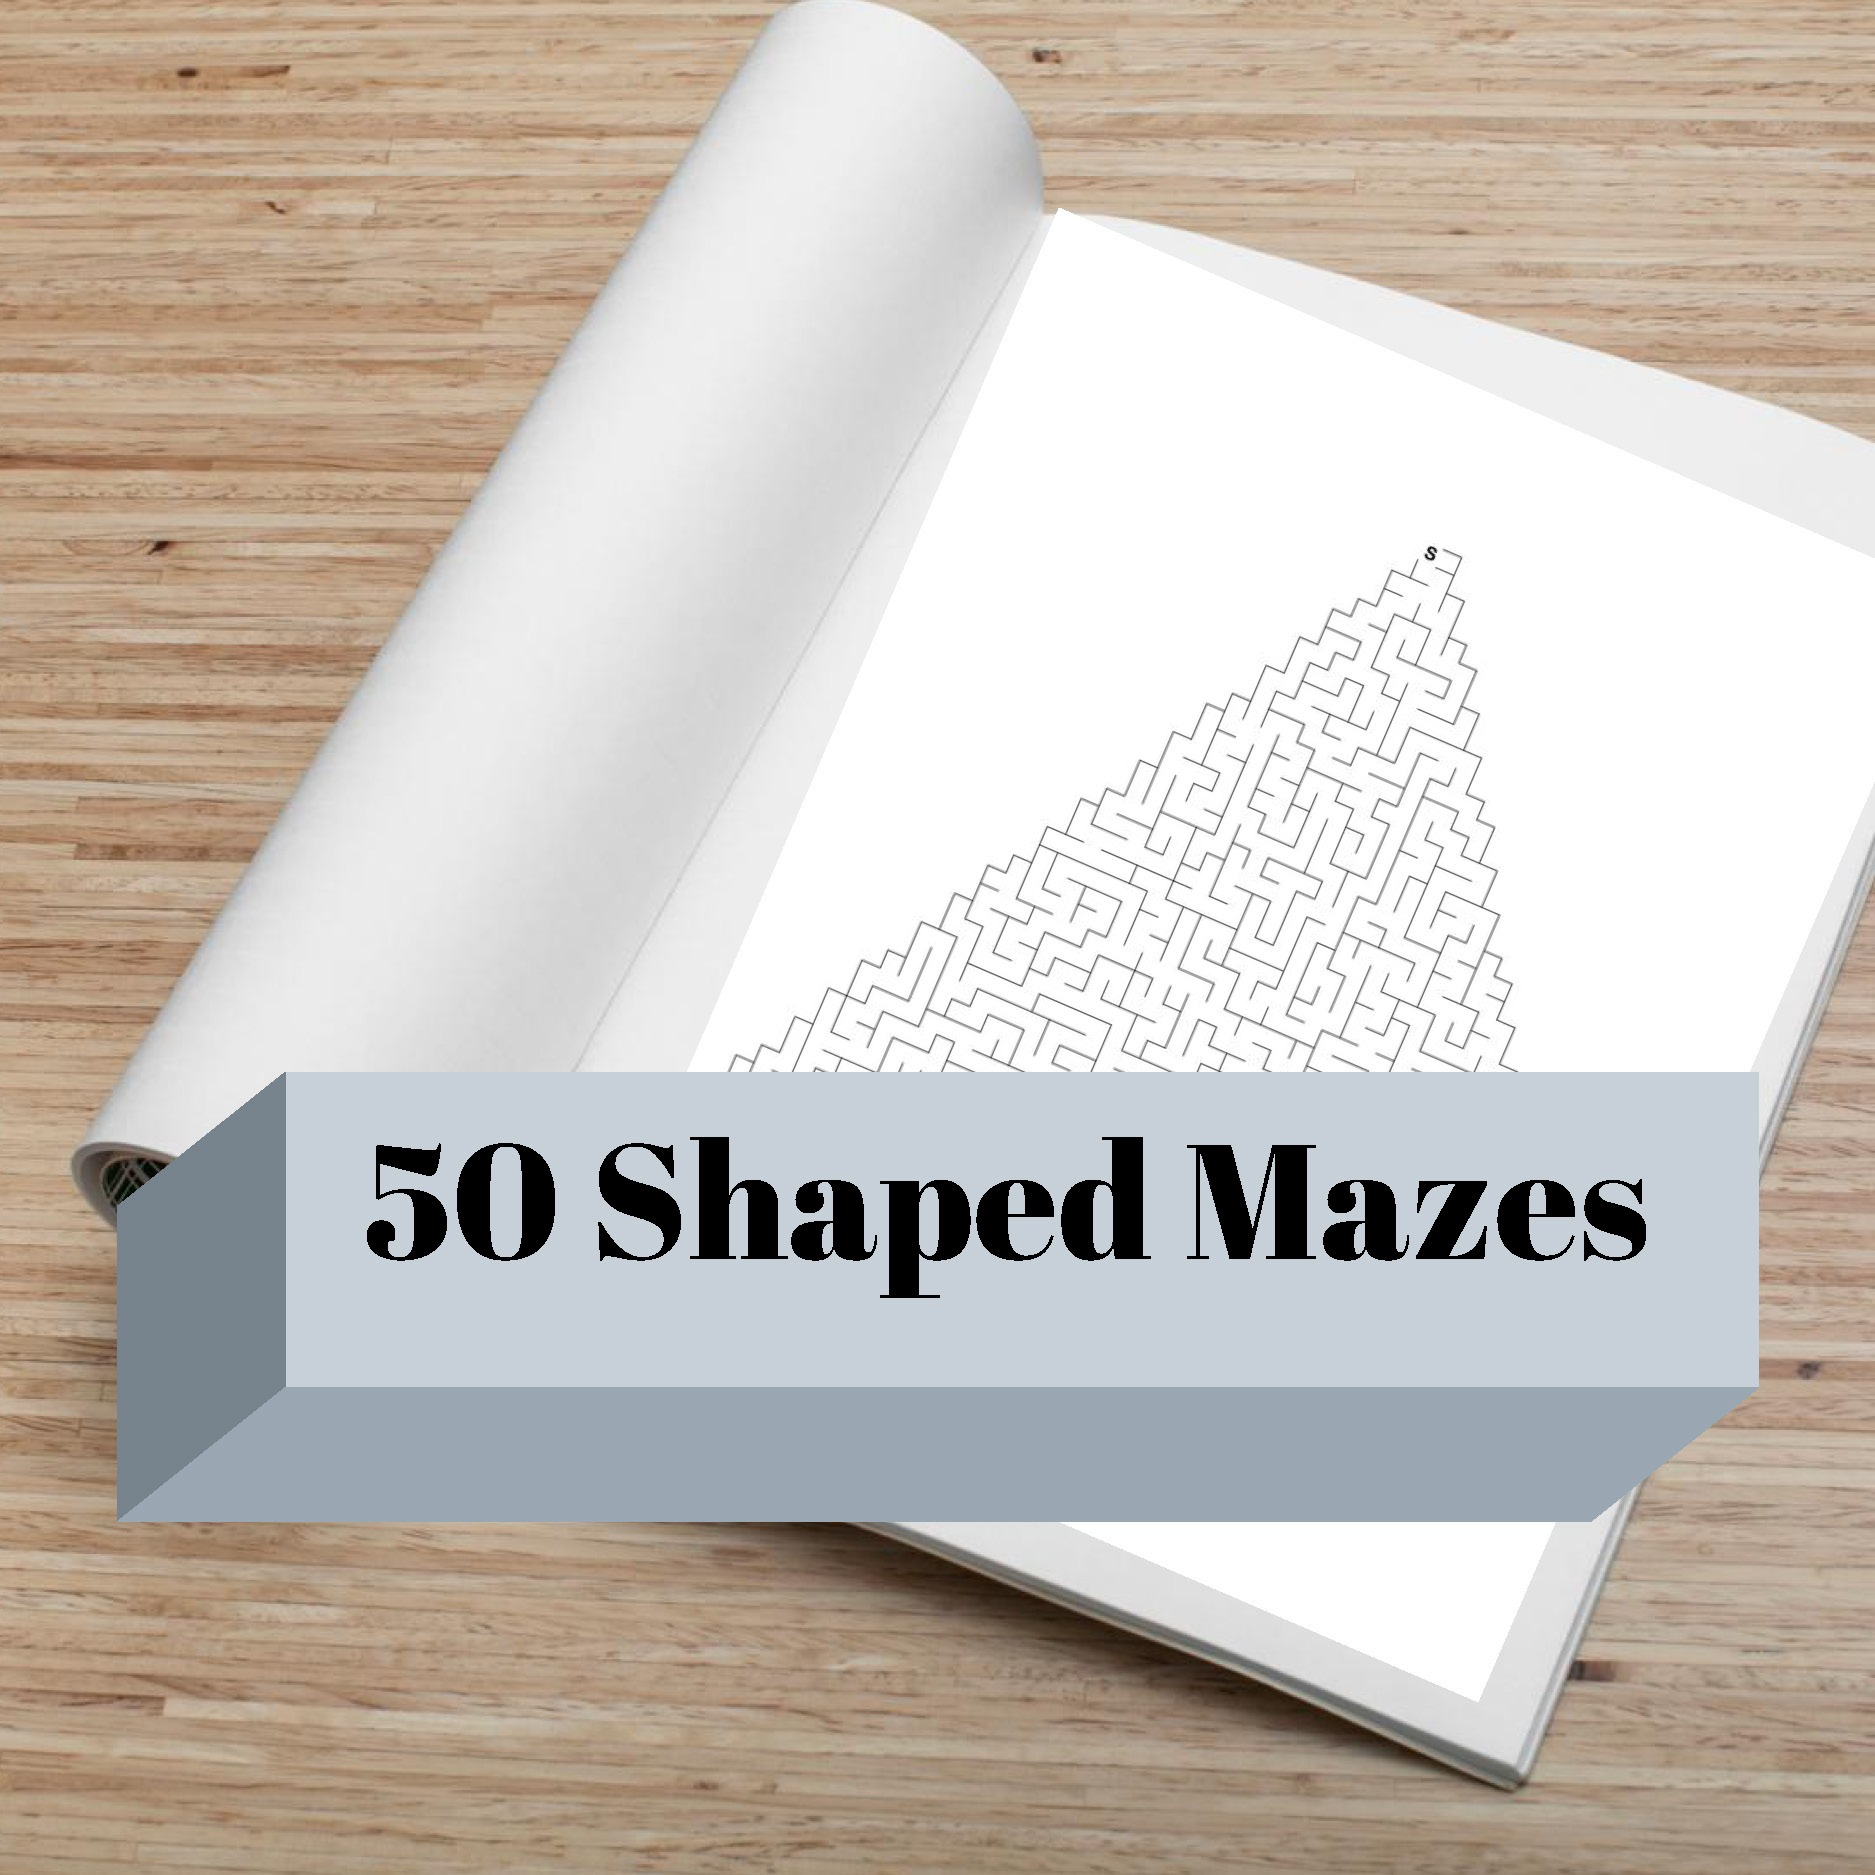 50 shaped mazes